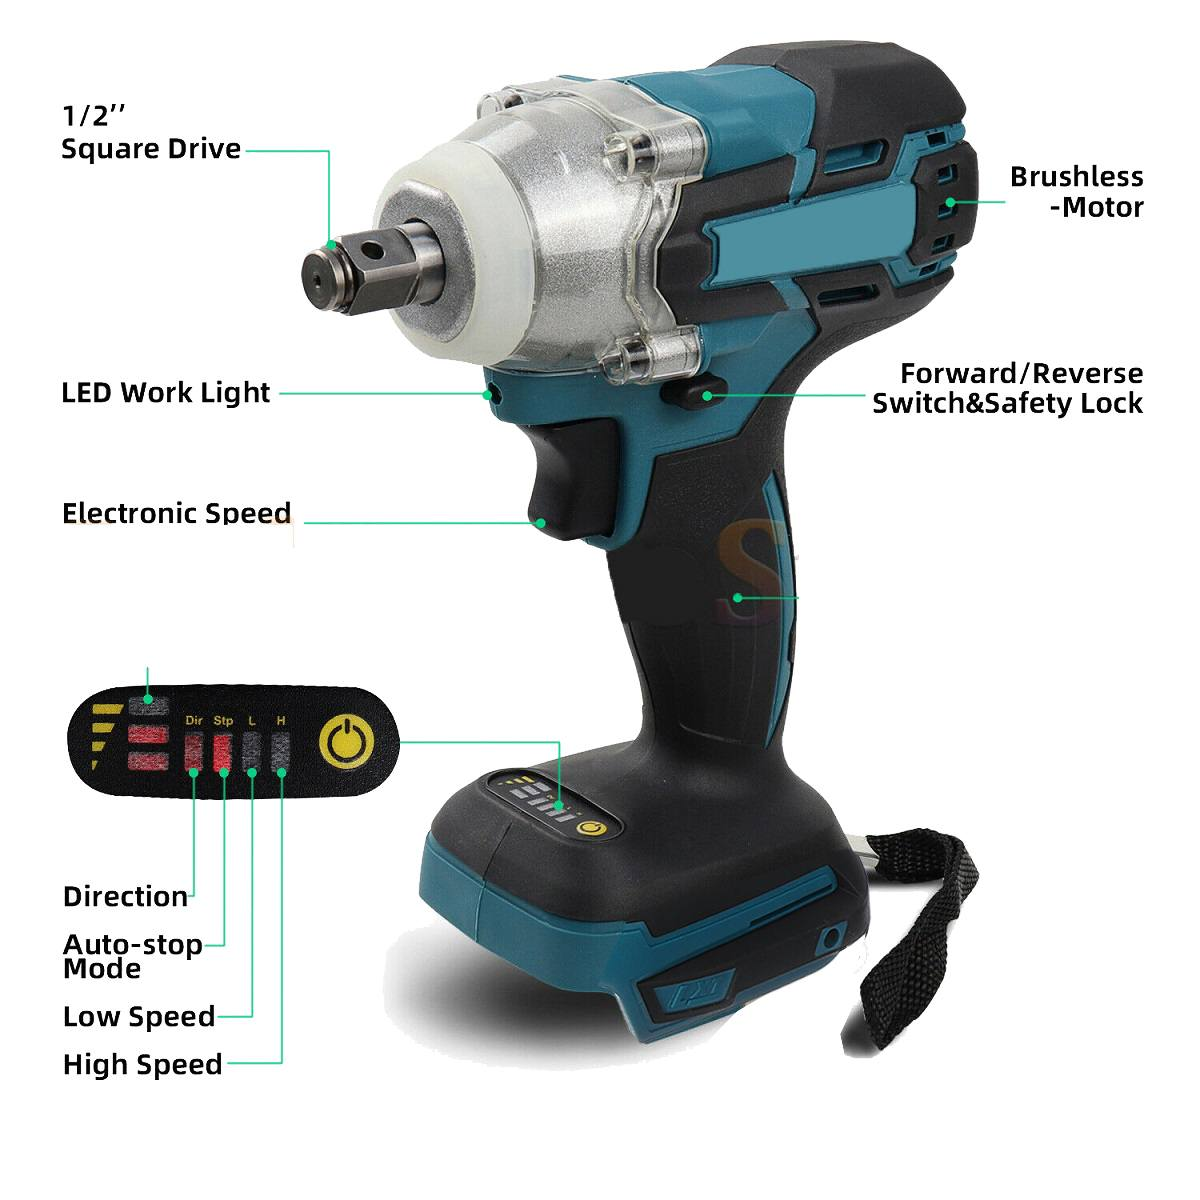 Socket Batteryless Cordless 520Nm And Wrench Impact Makita Wireless Accessories Wrench Brushless Power Battery Electric 18V Tool